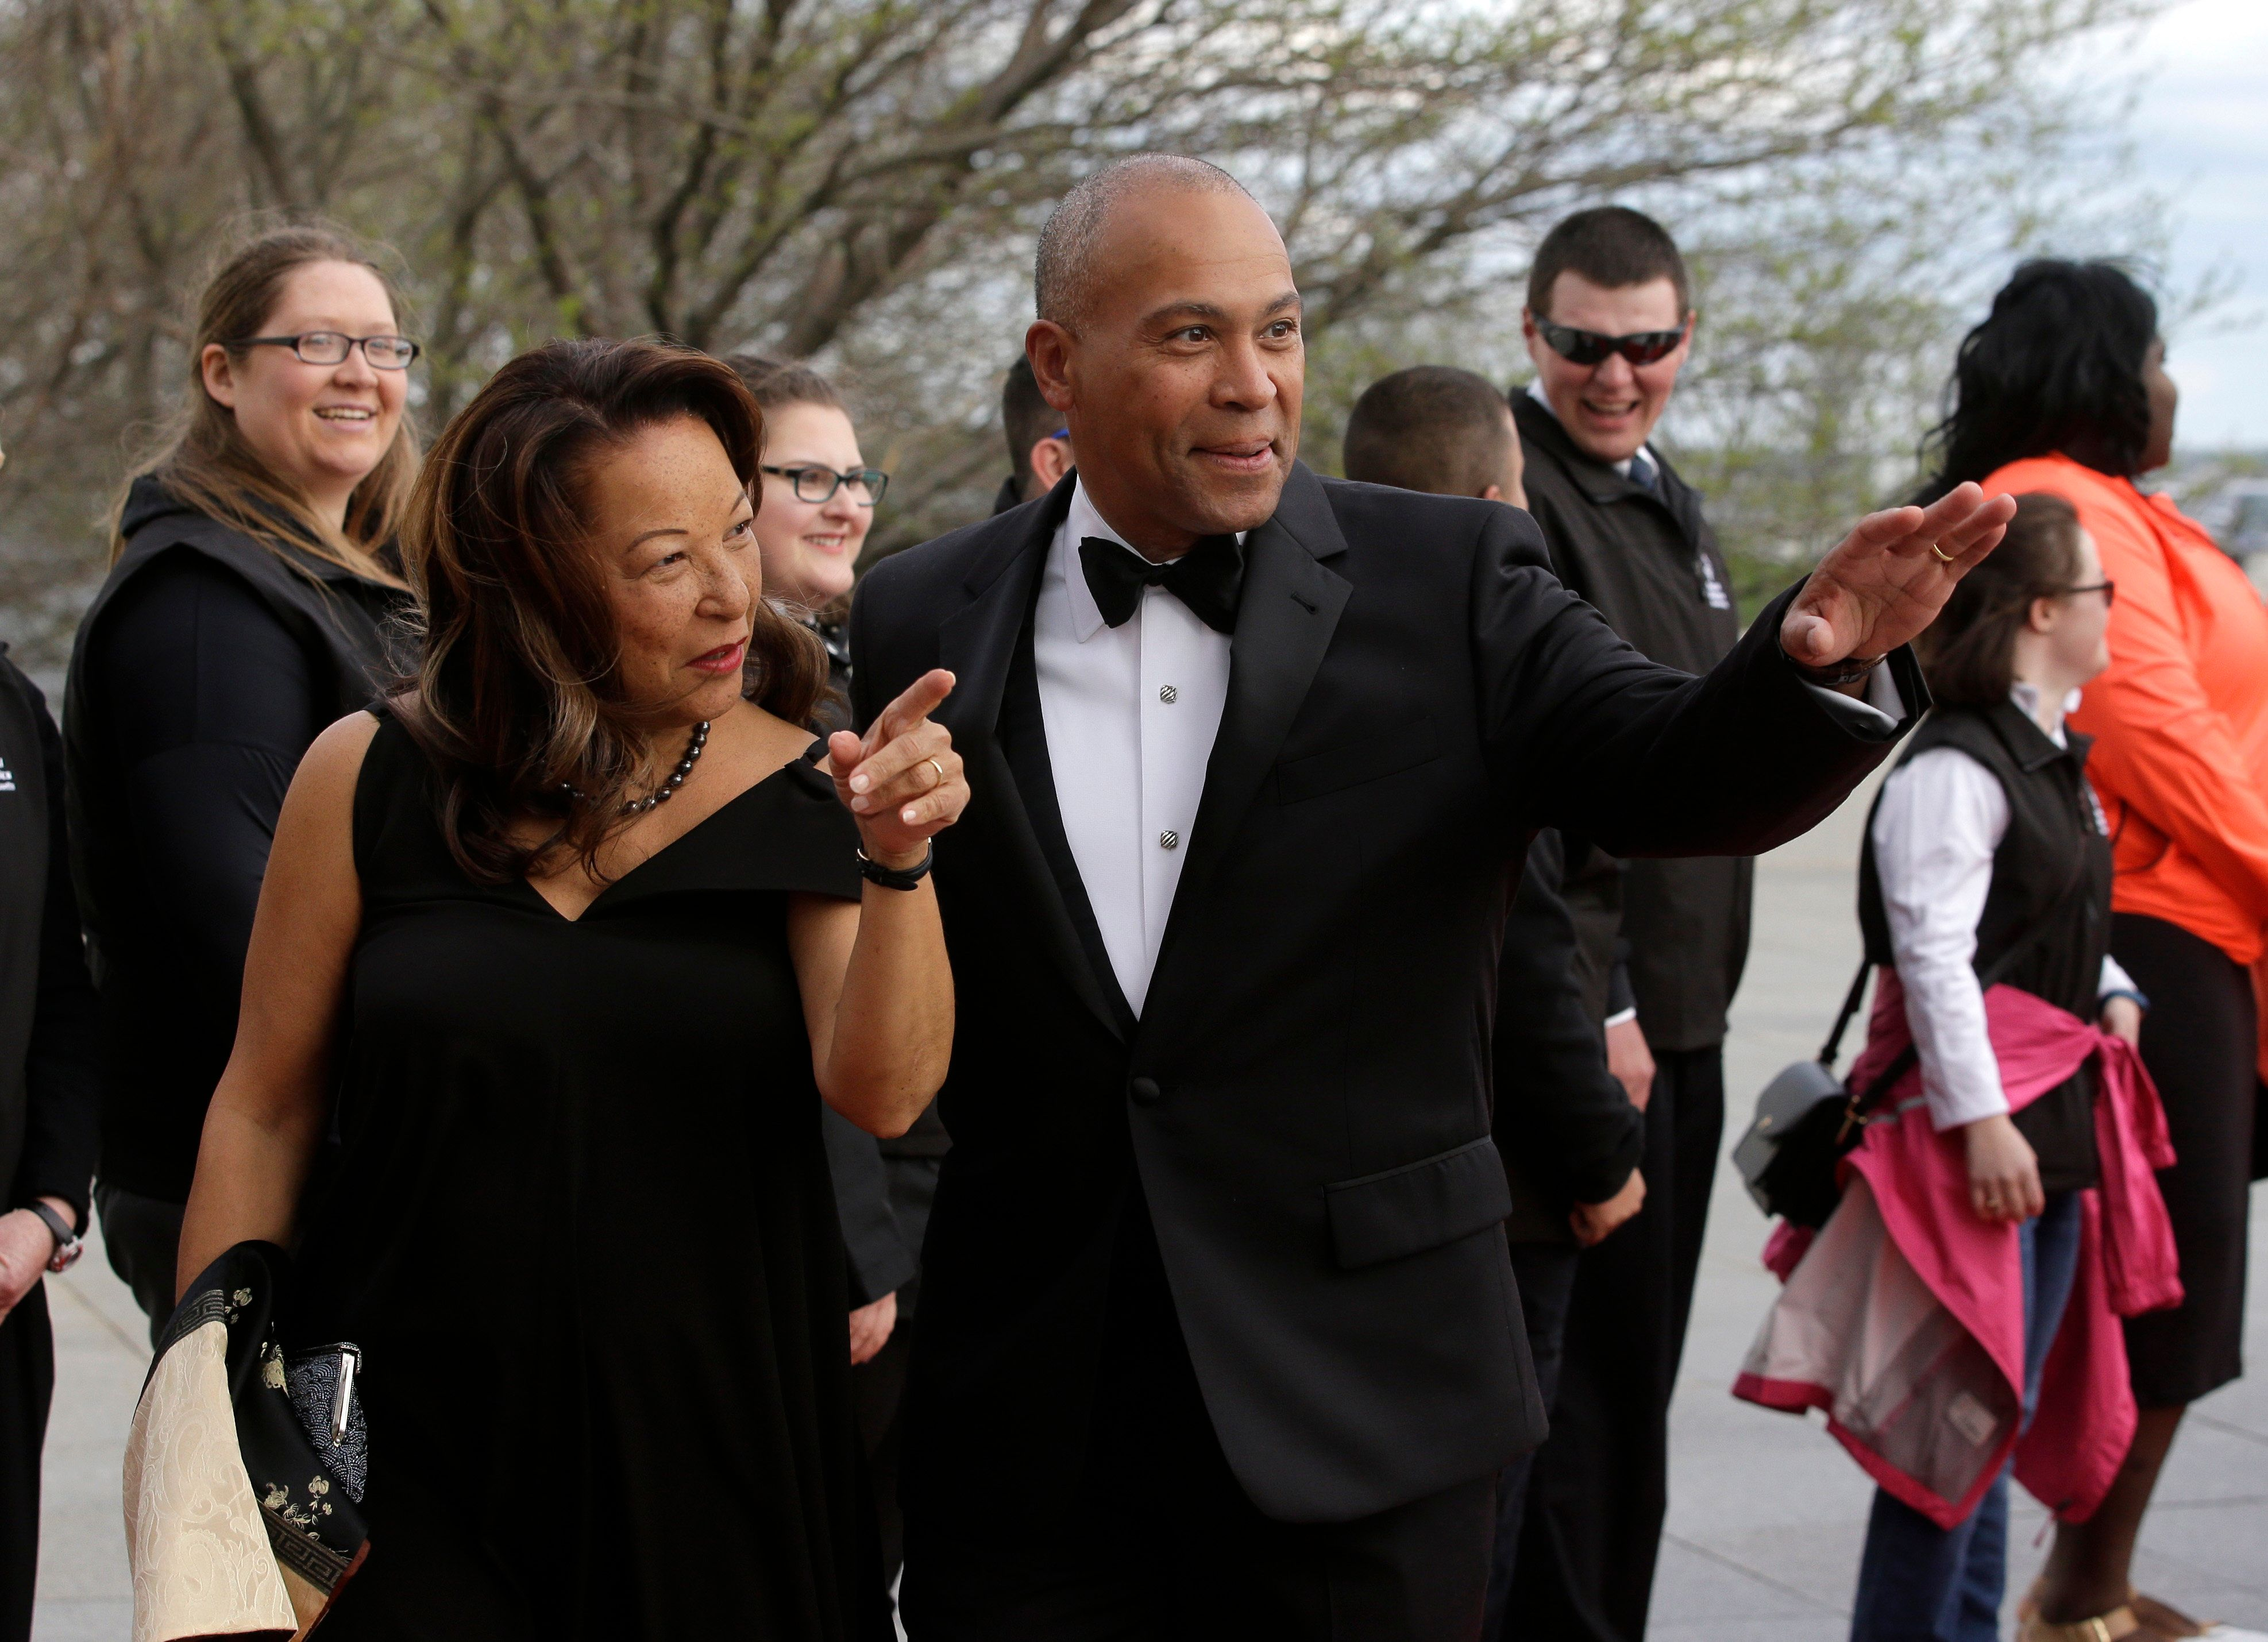 Former Massachusetts Governor Deval Patrick is seen at the John F. Kennedy Presidential Library and Museum in 2017with